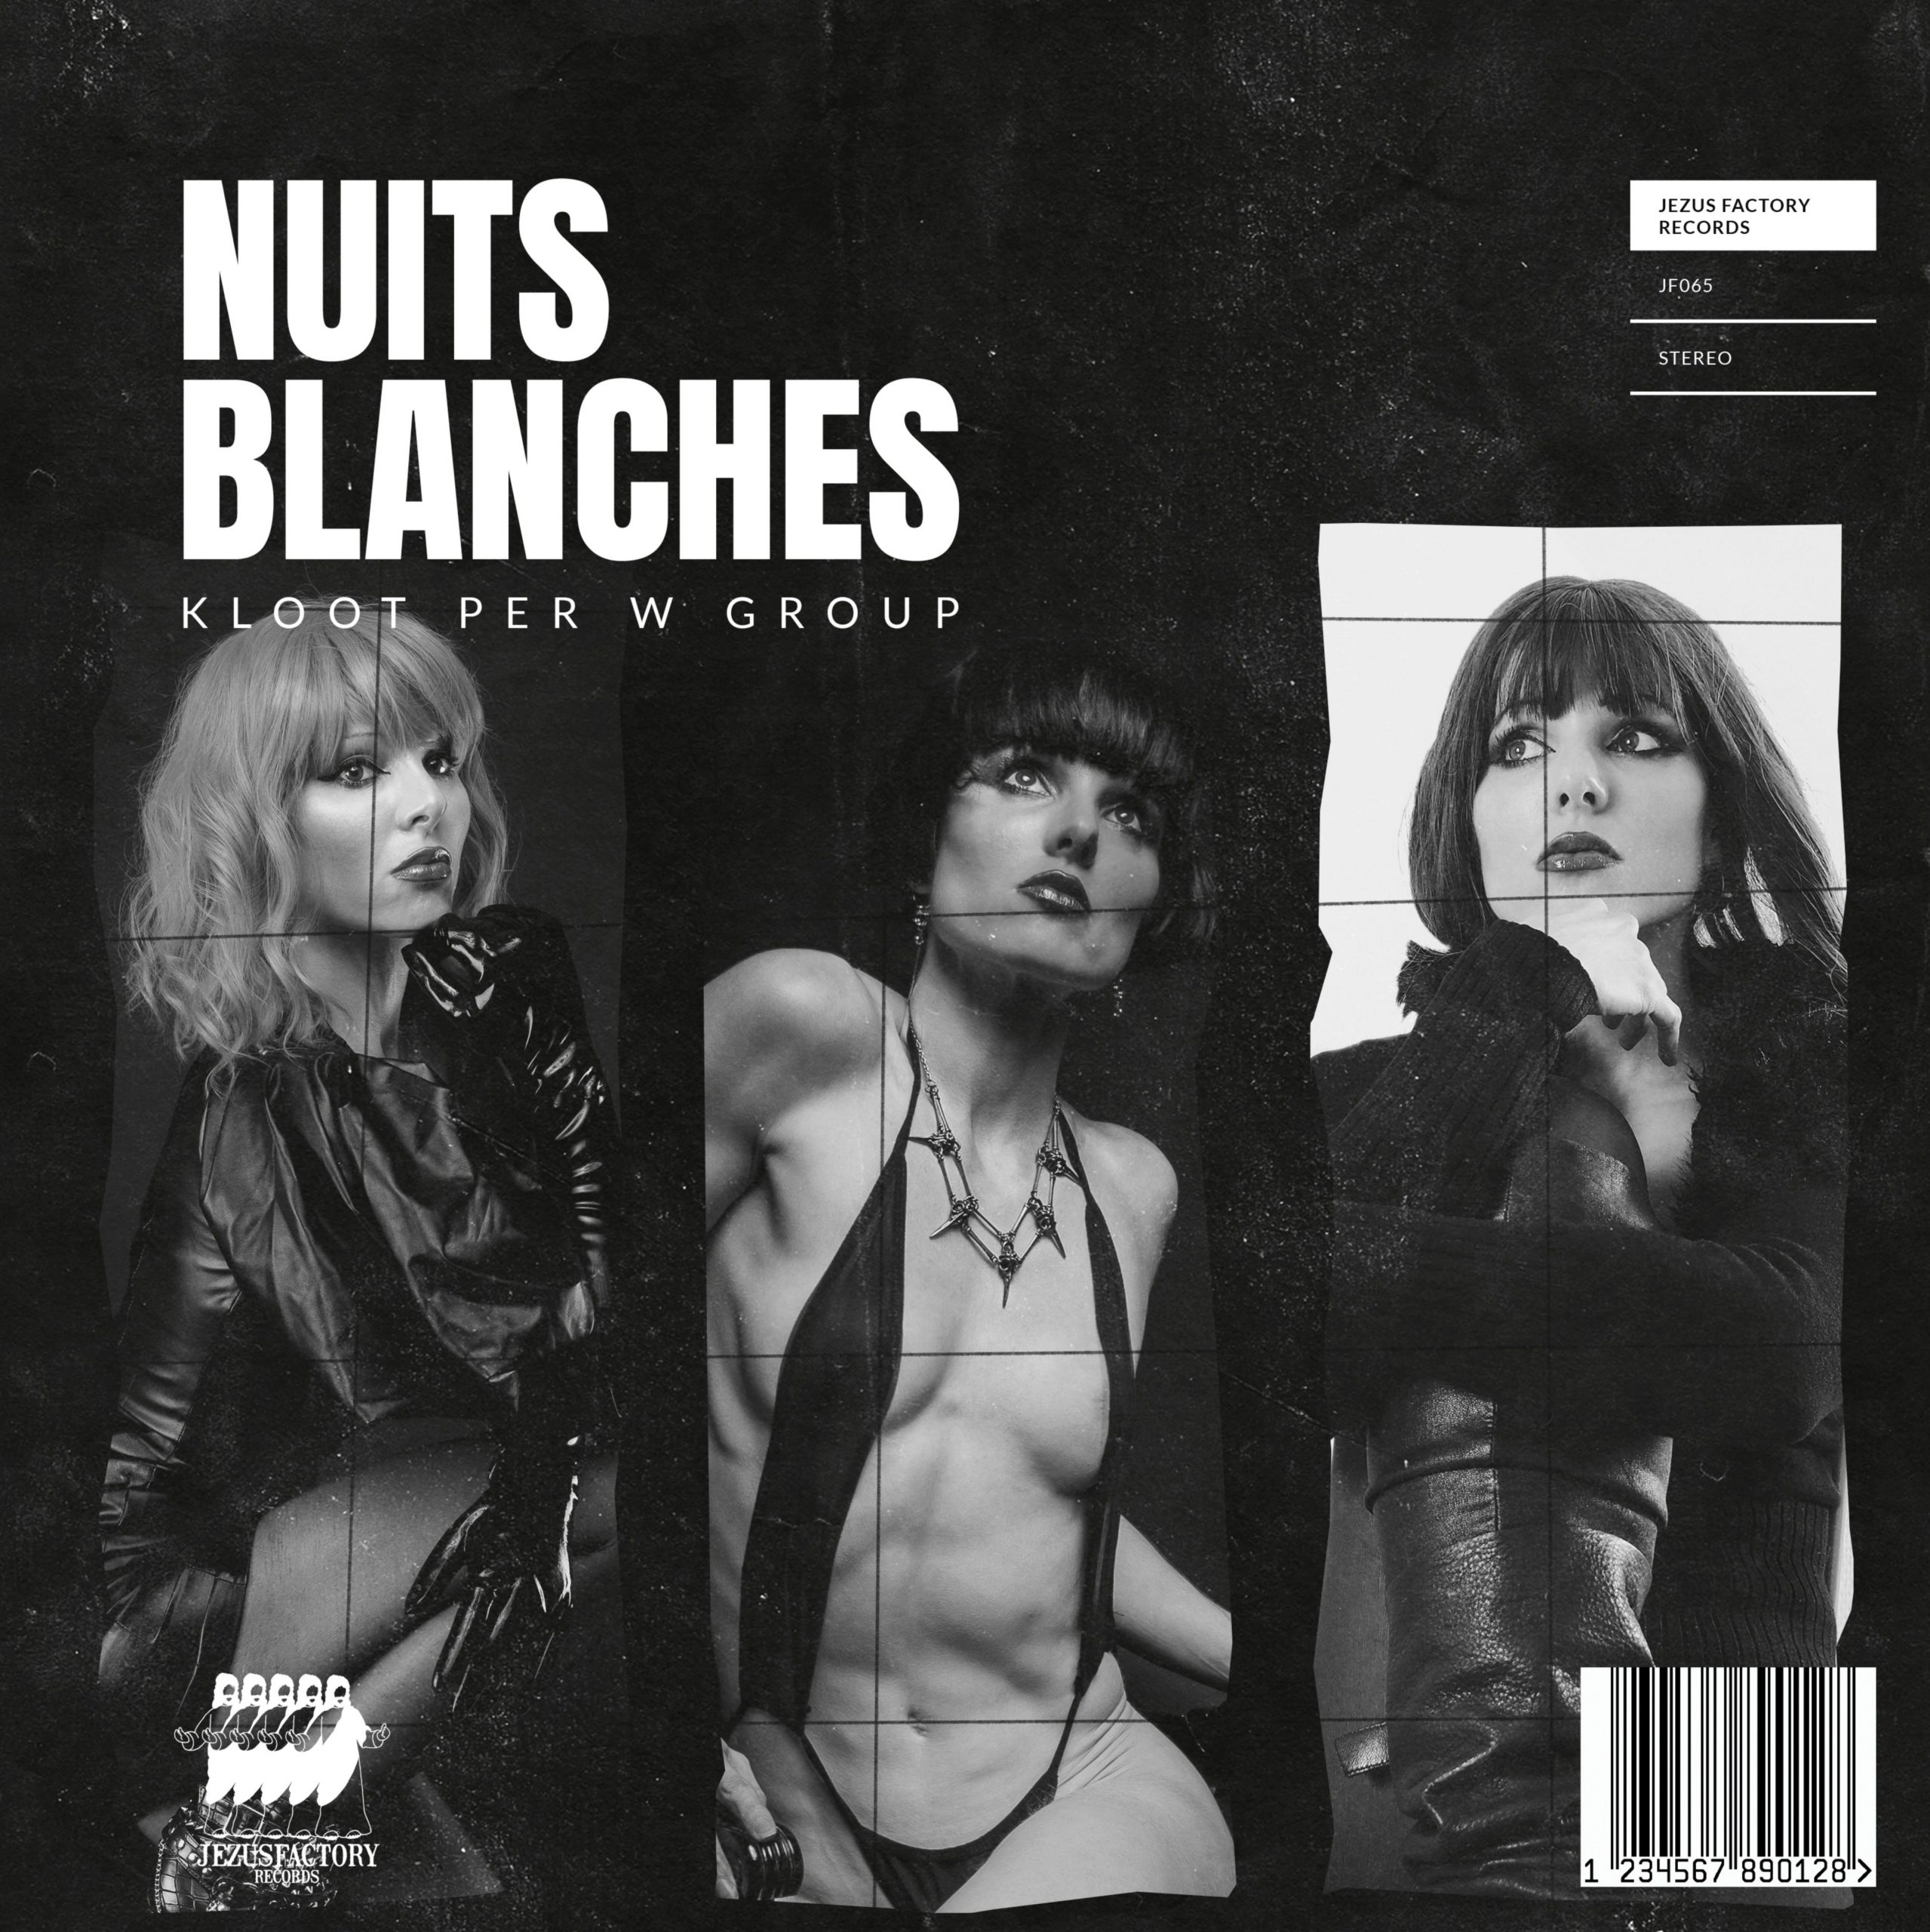 Kloot Per W Group - Nuits Blanches